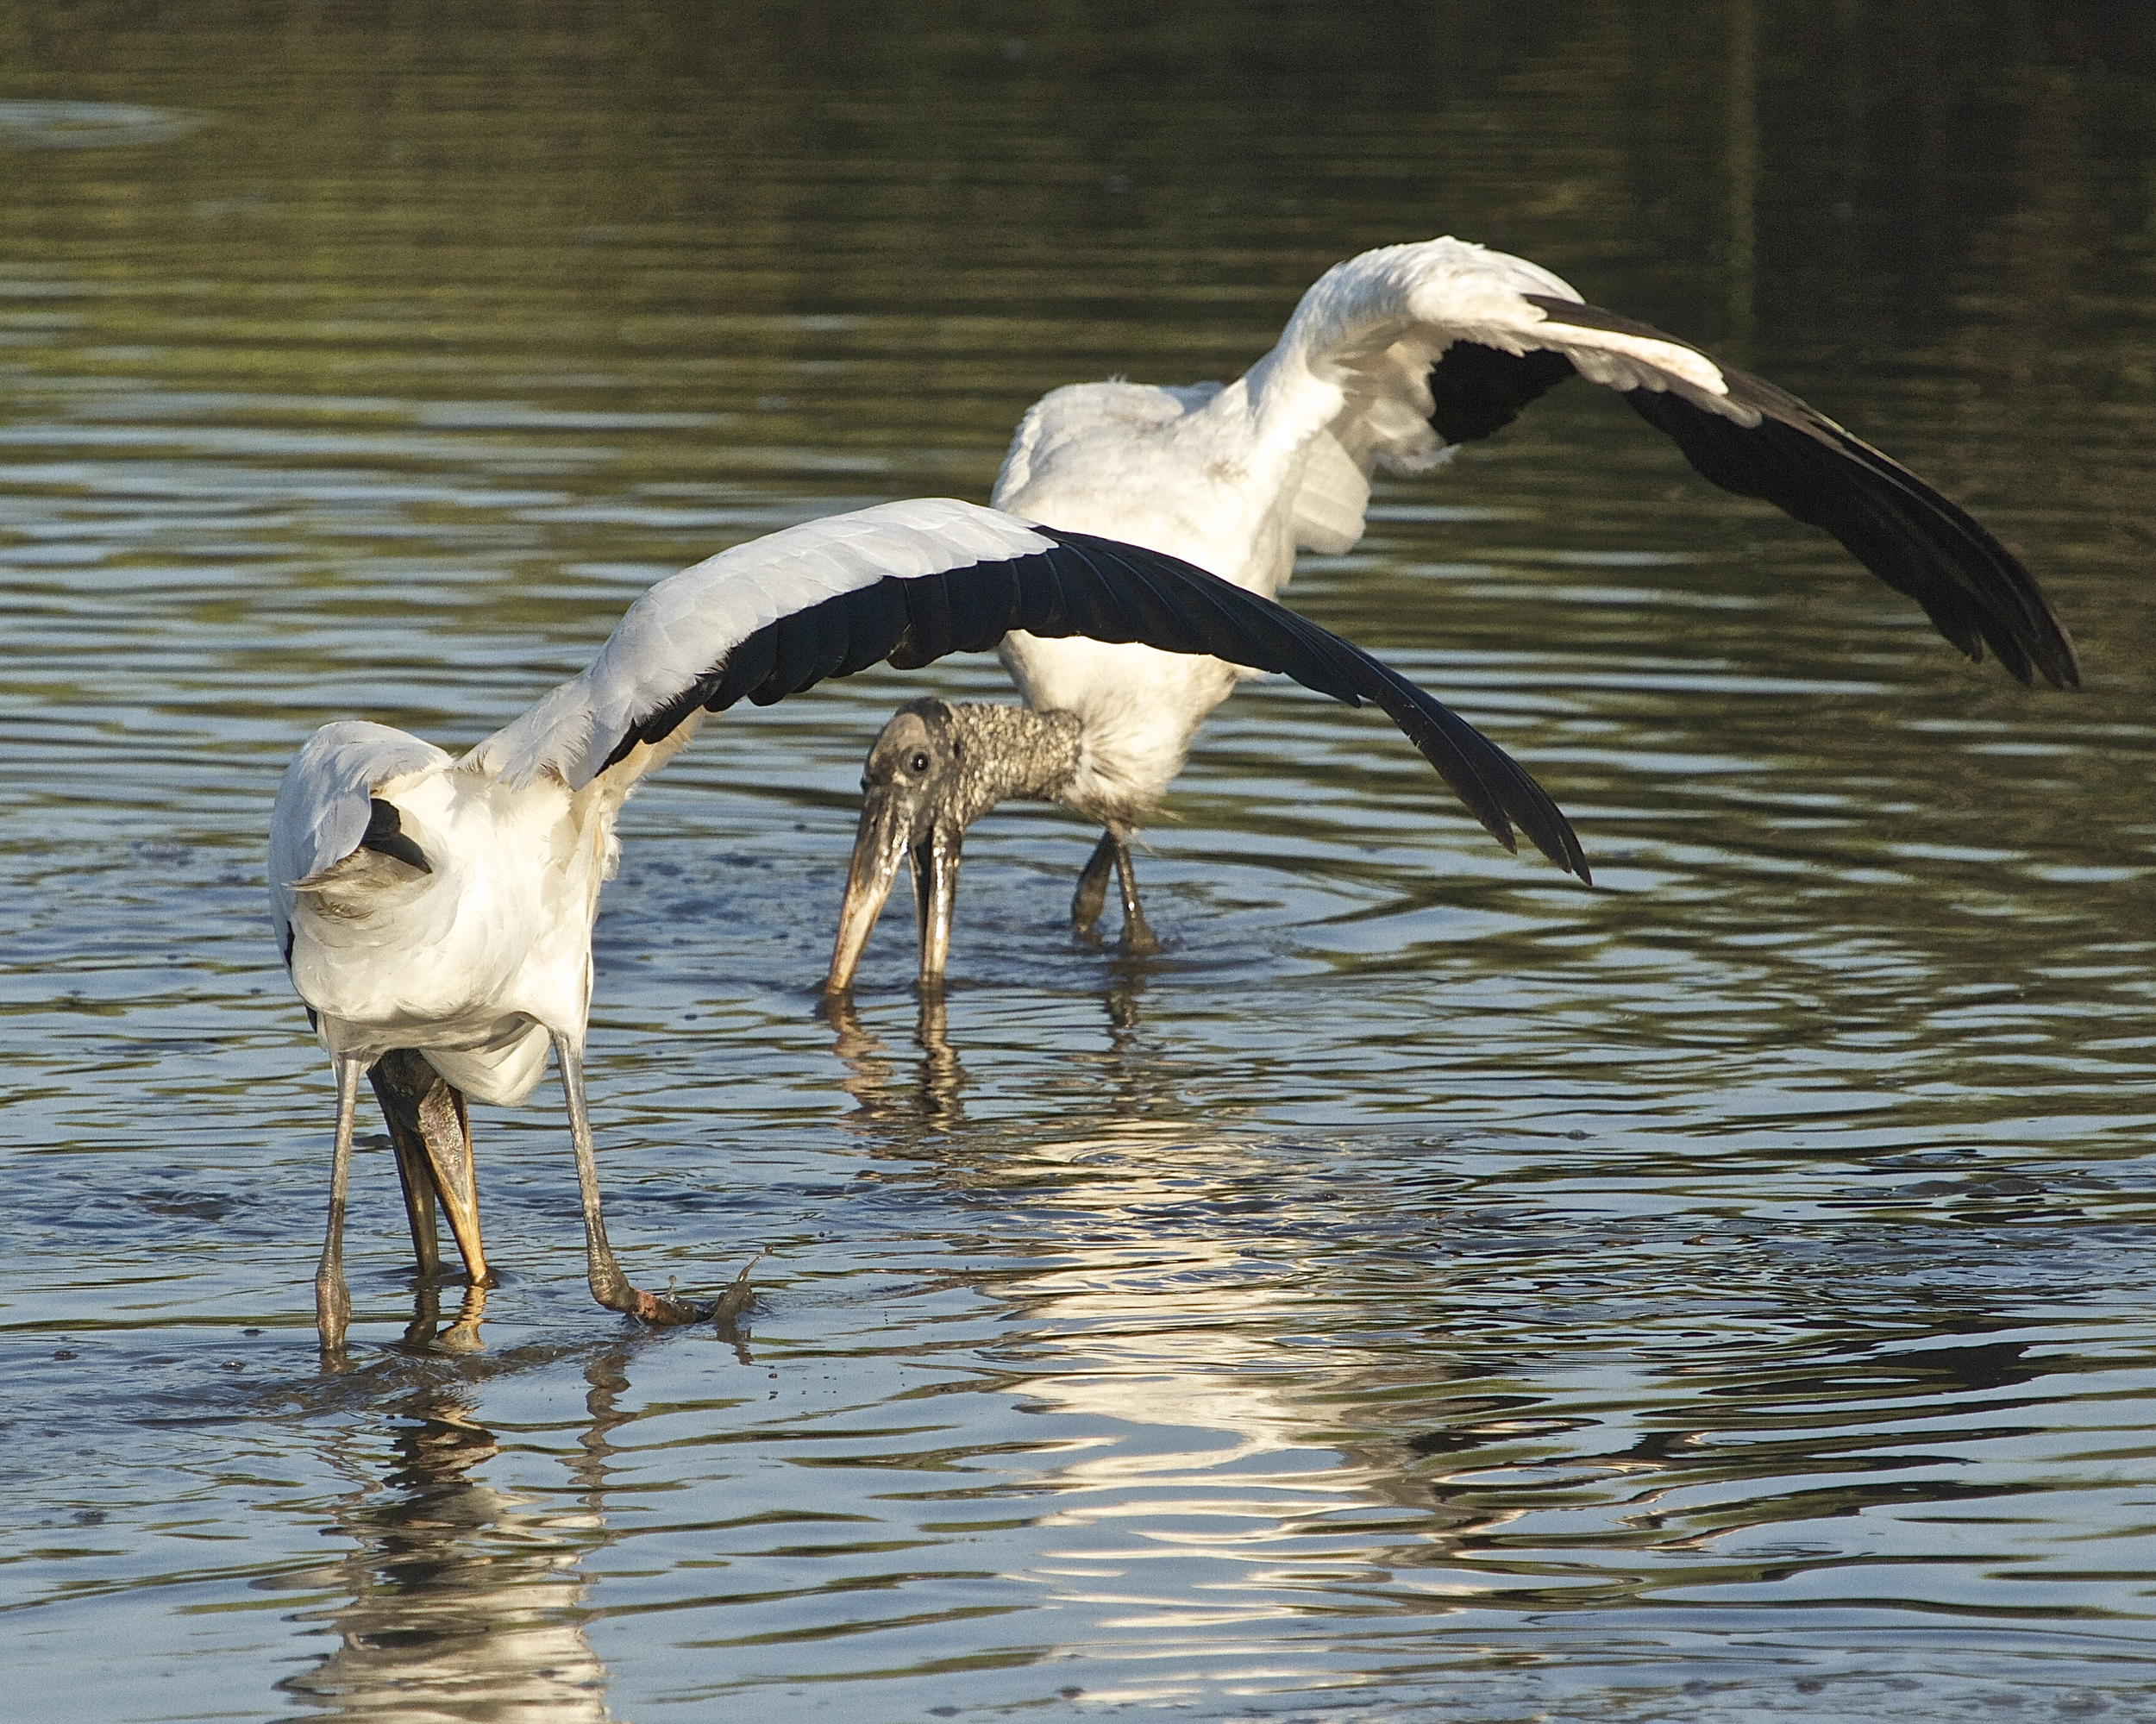 The Wood Storks use a raised wing and sweeping foot to spook the minnows into waiting beaks.